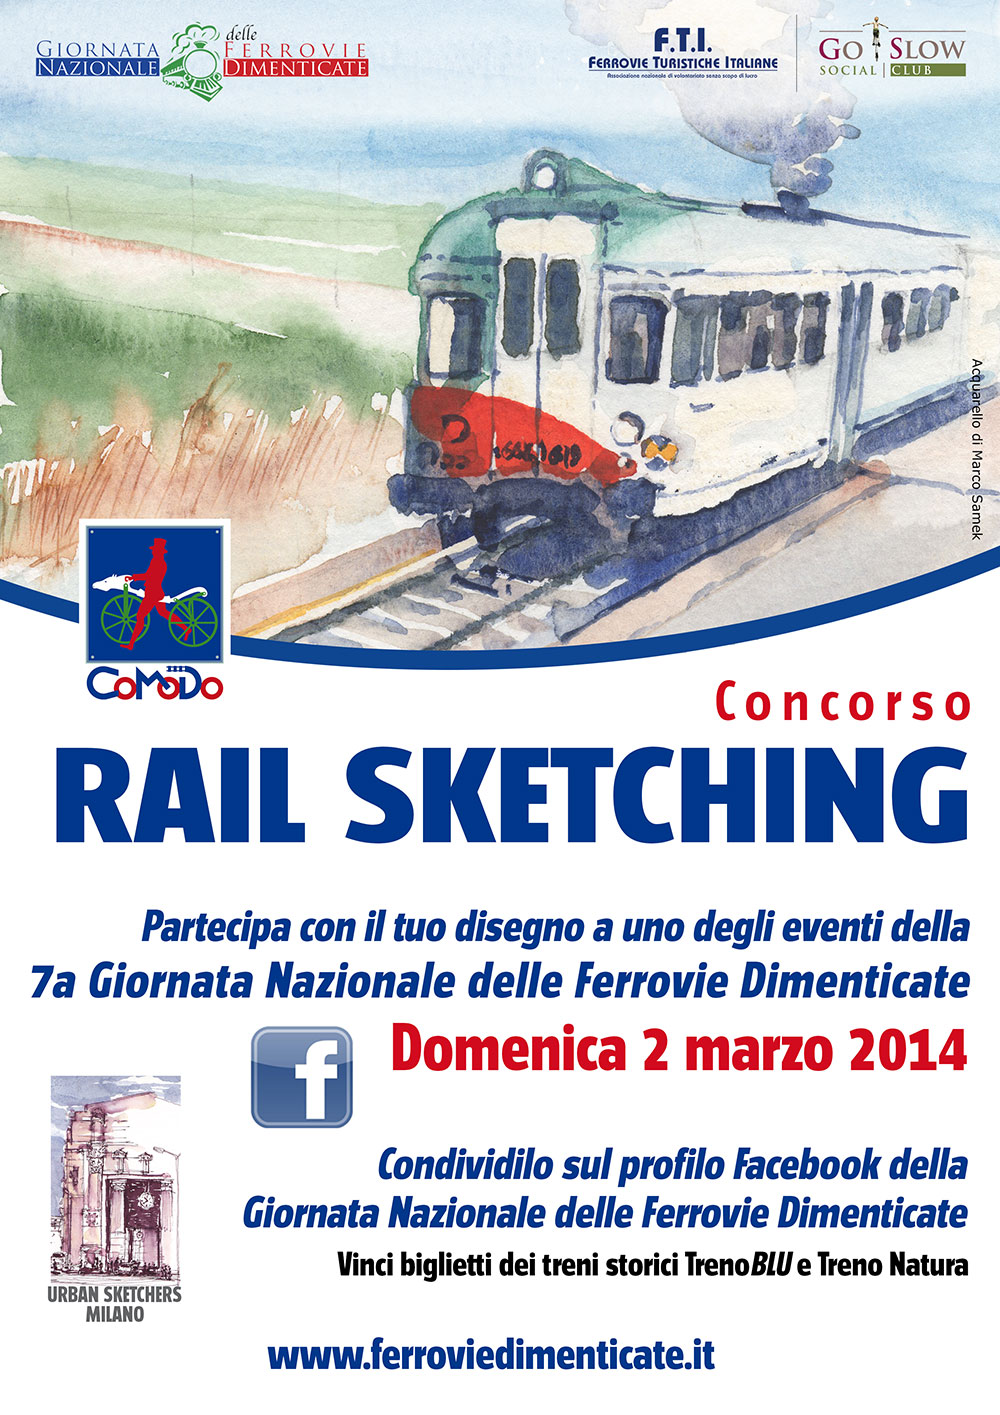 Locandina Concorso Rail Sketching Co.Mo.Do. 2014